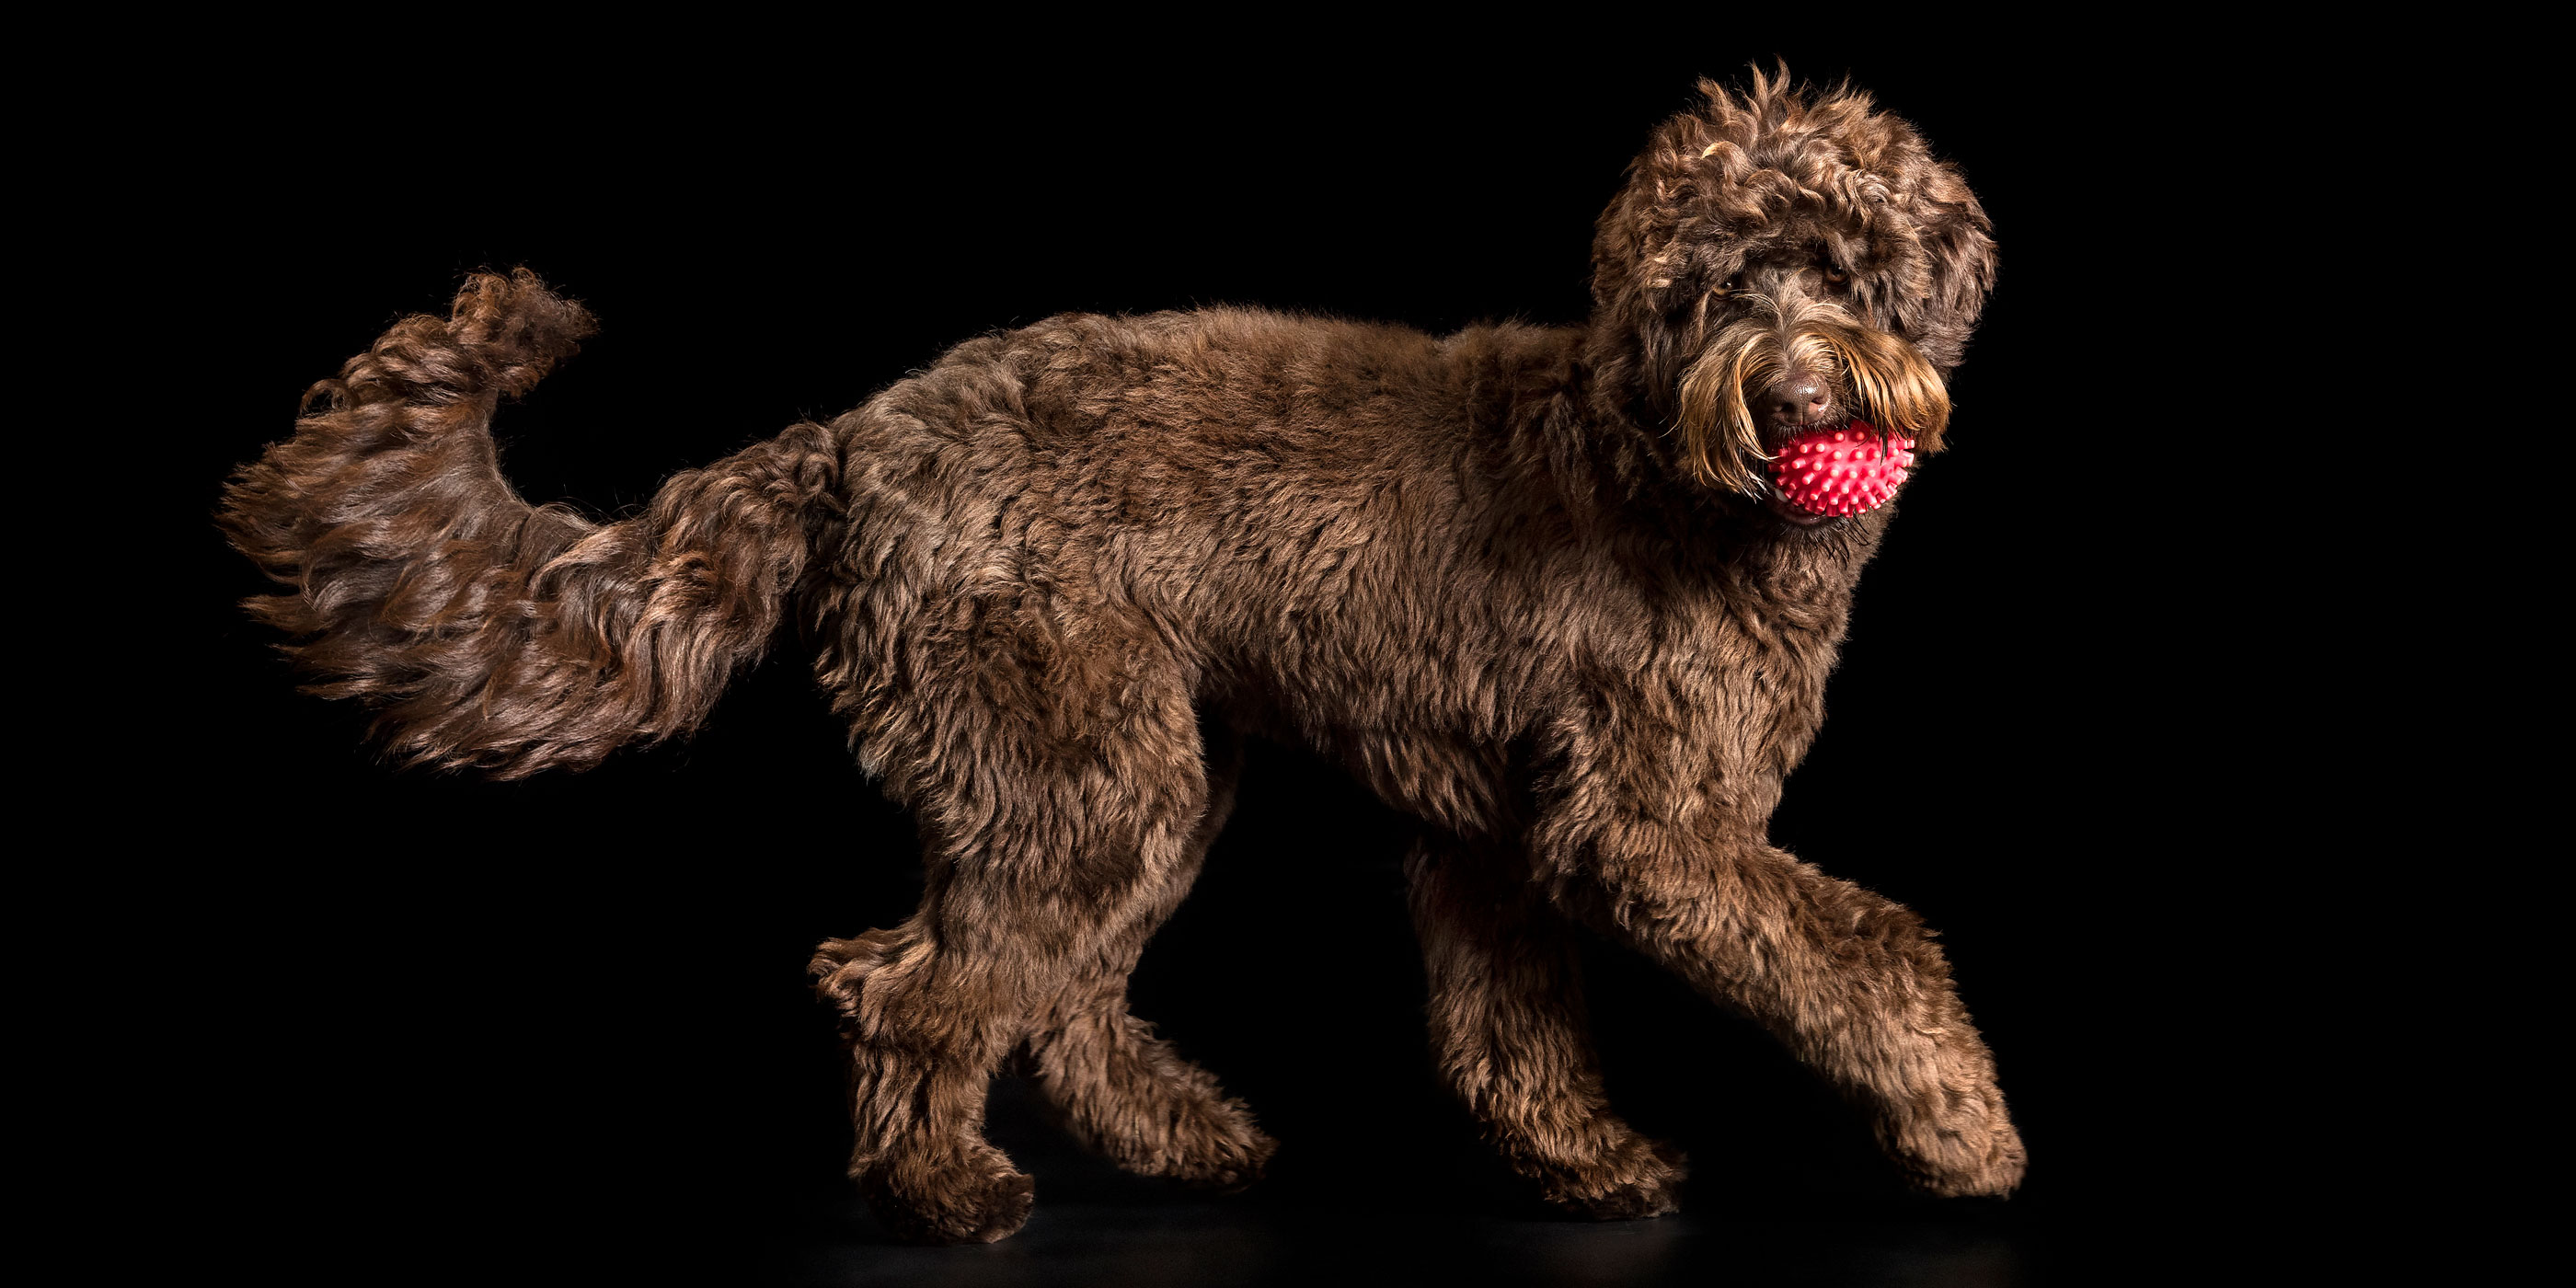 pink ball in labradoodle's mouth